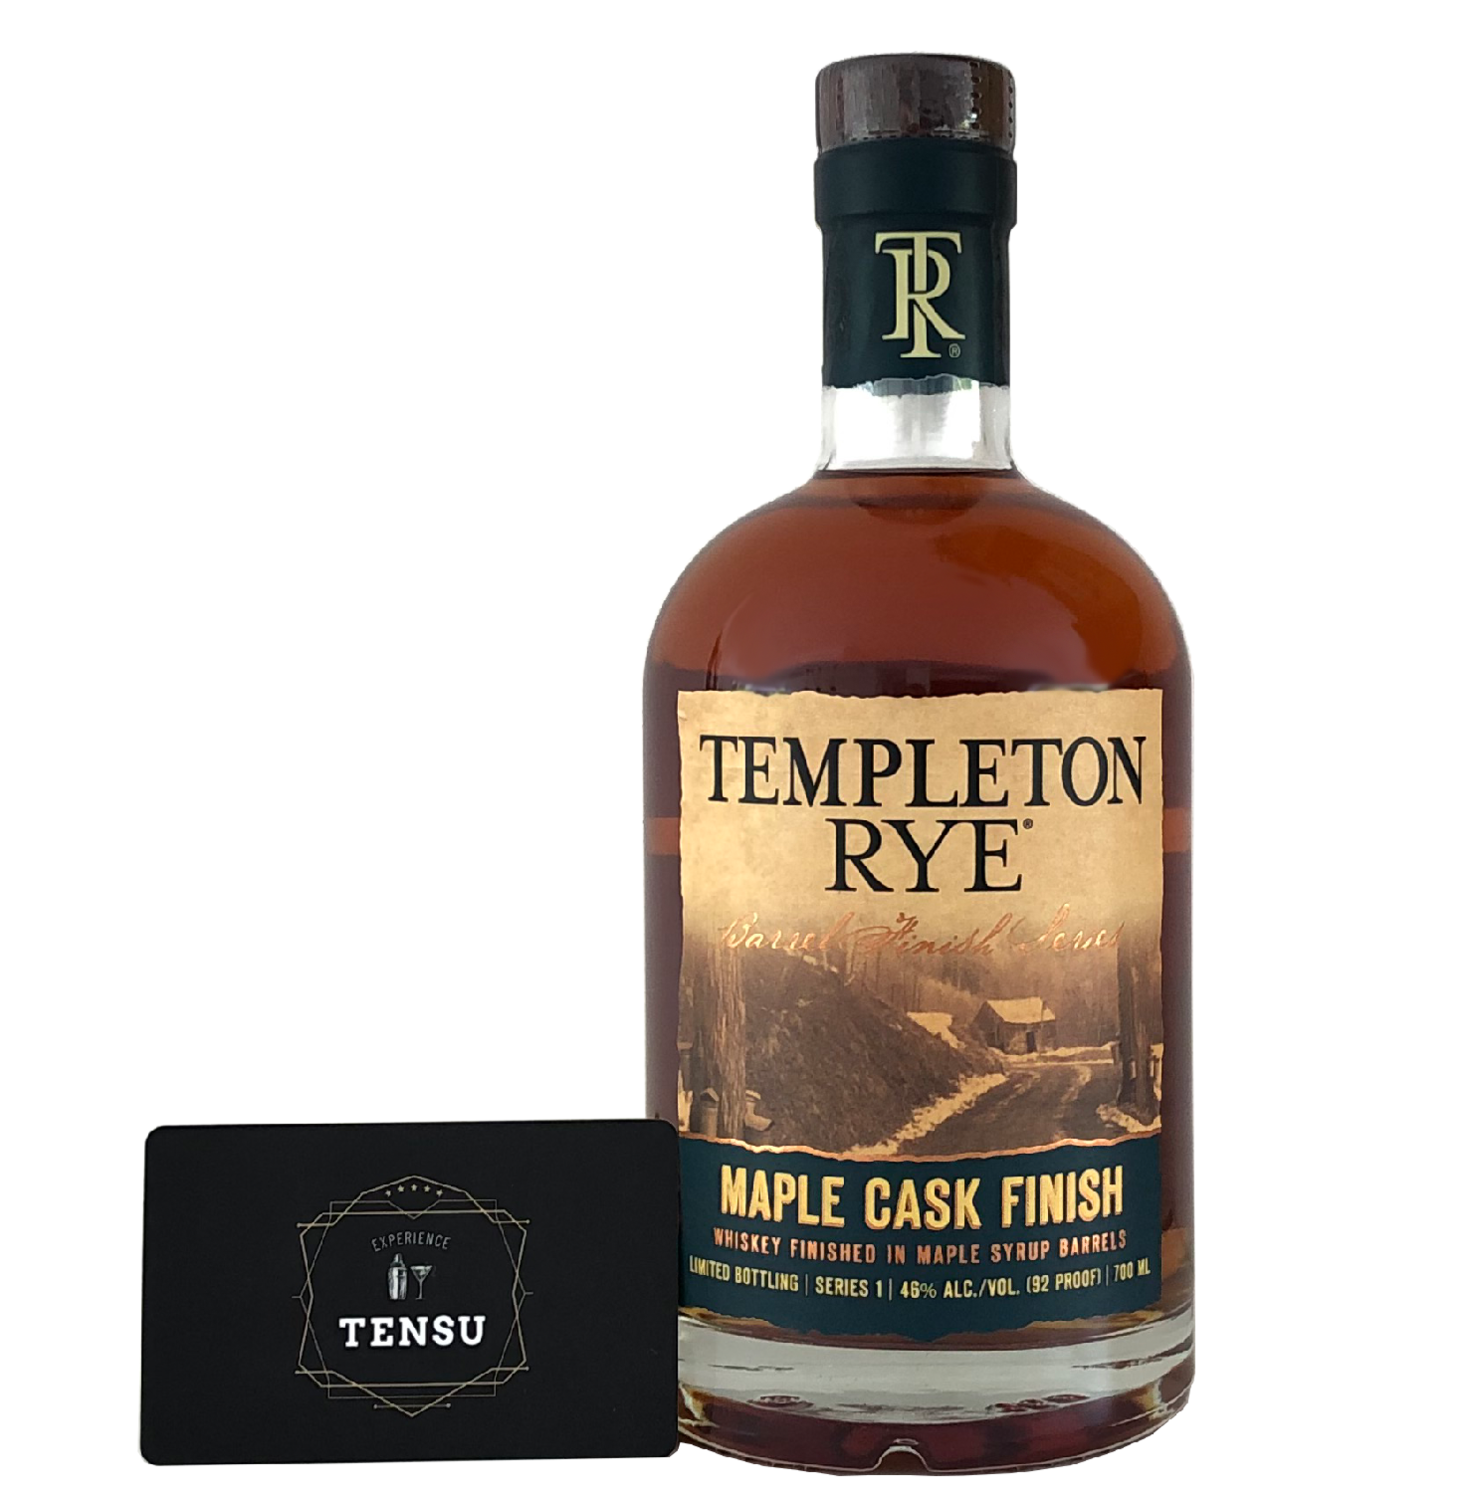 Templeton Rye - Maple Cask Finish (Series 1)